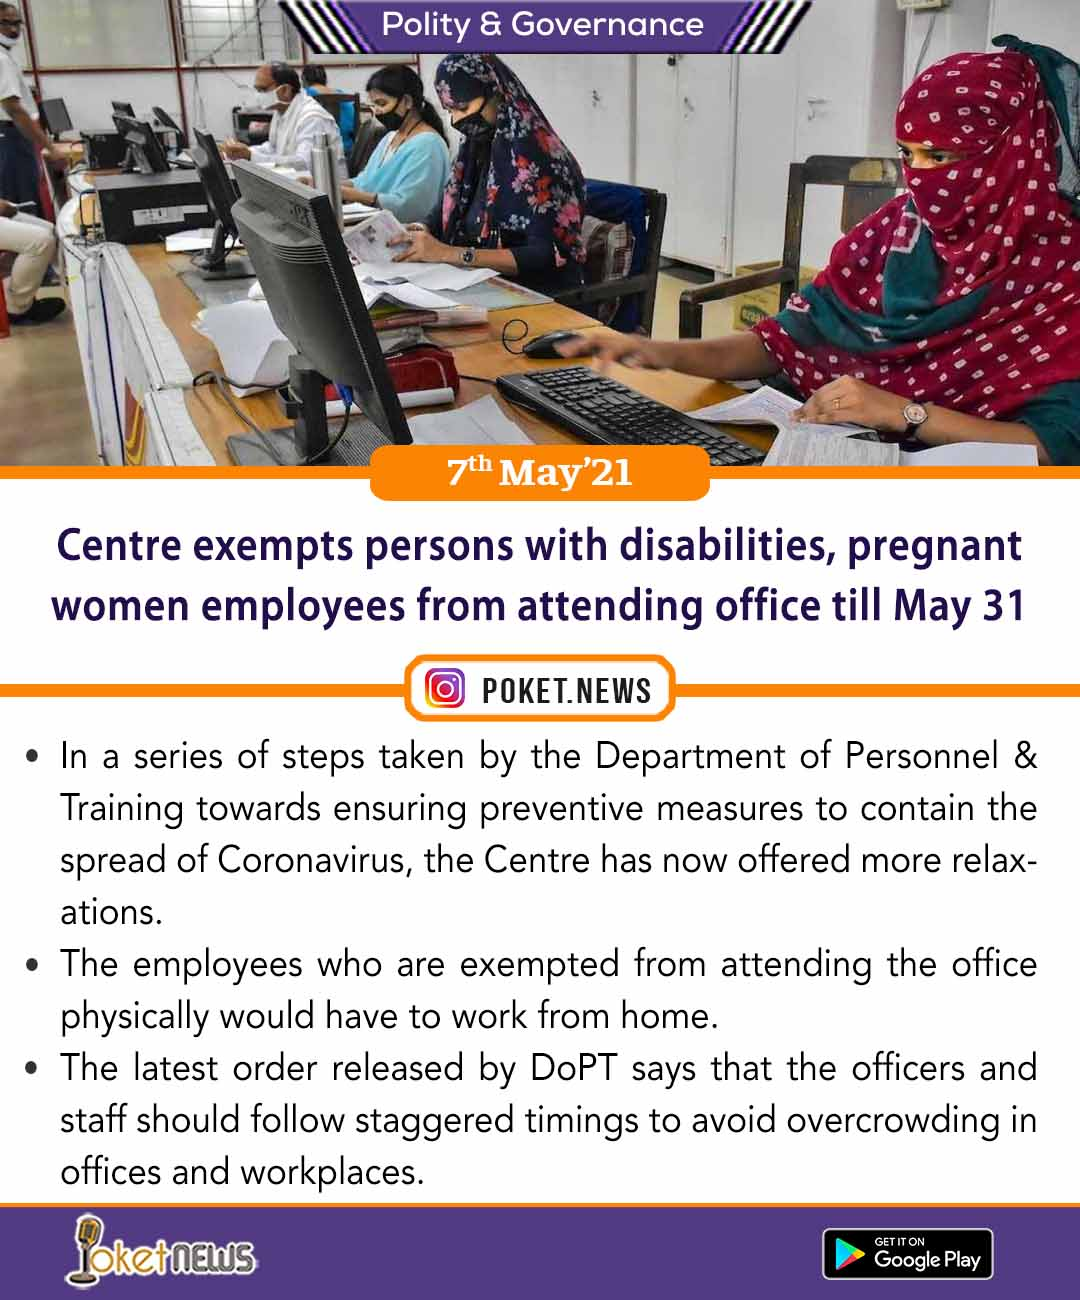 Centre exempts persons with disabilities, pregnant women employees from attending office till May 31